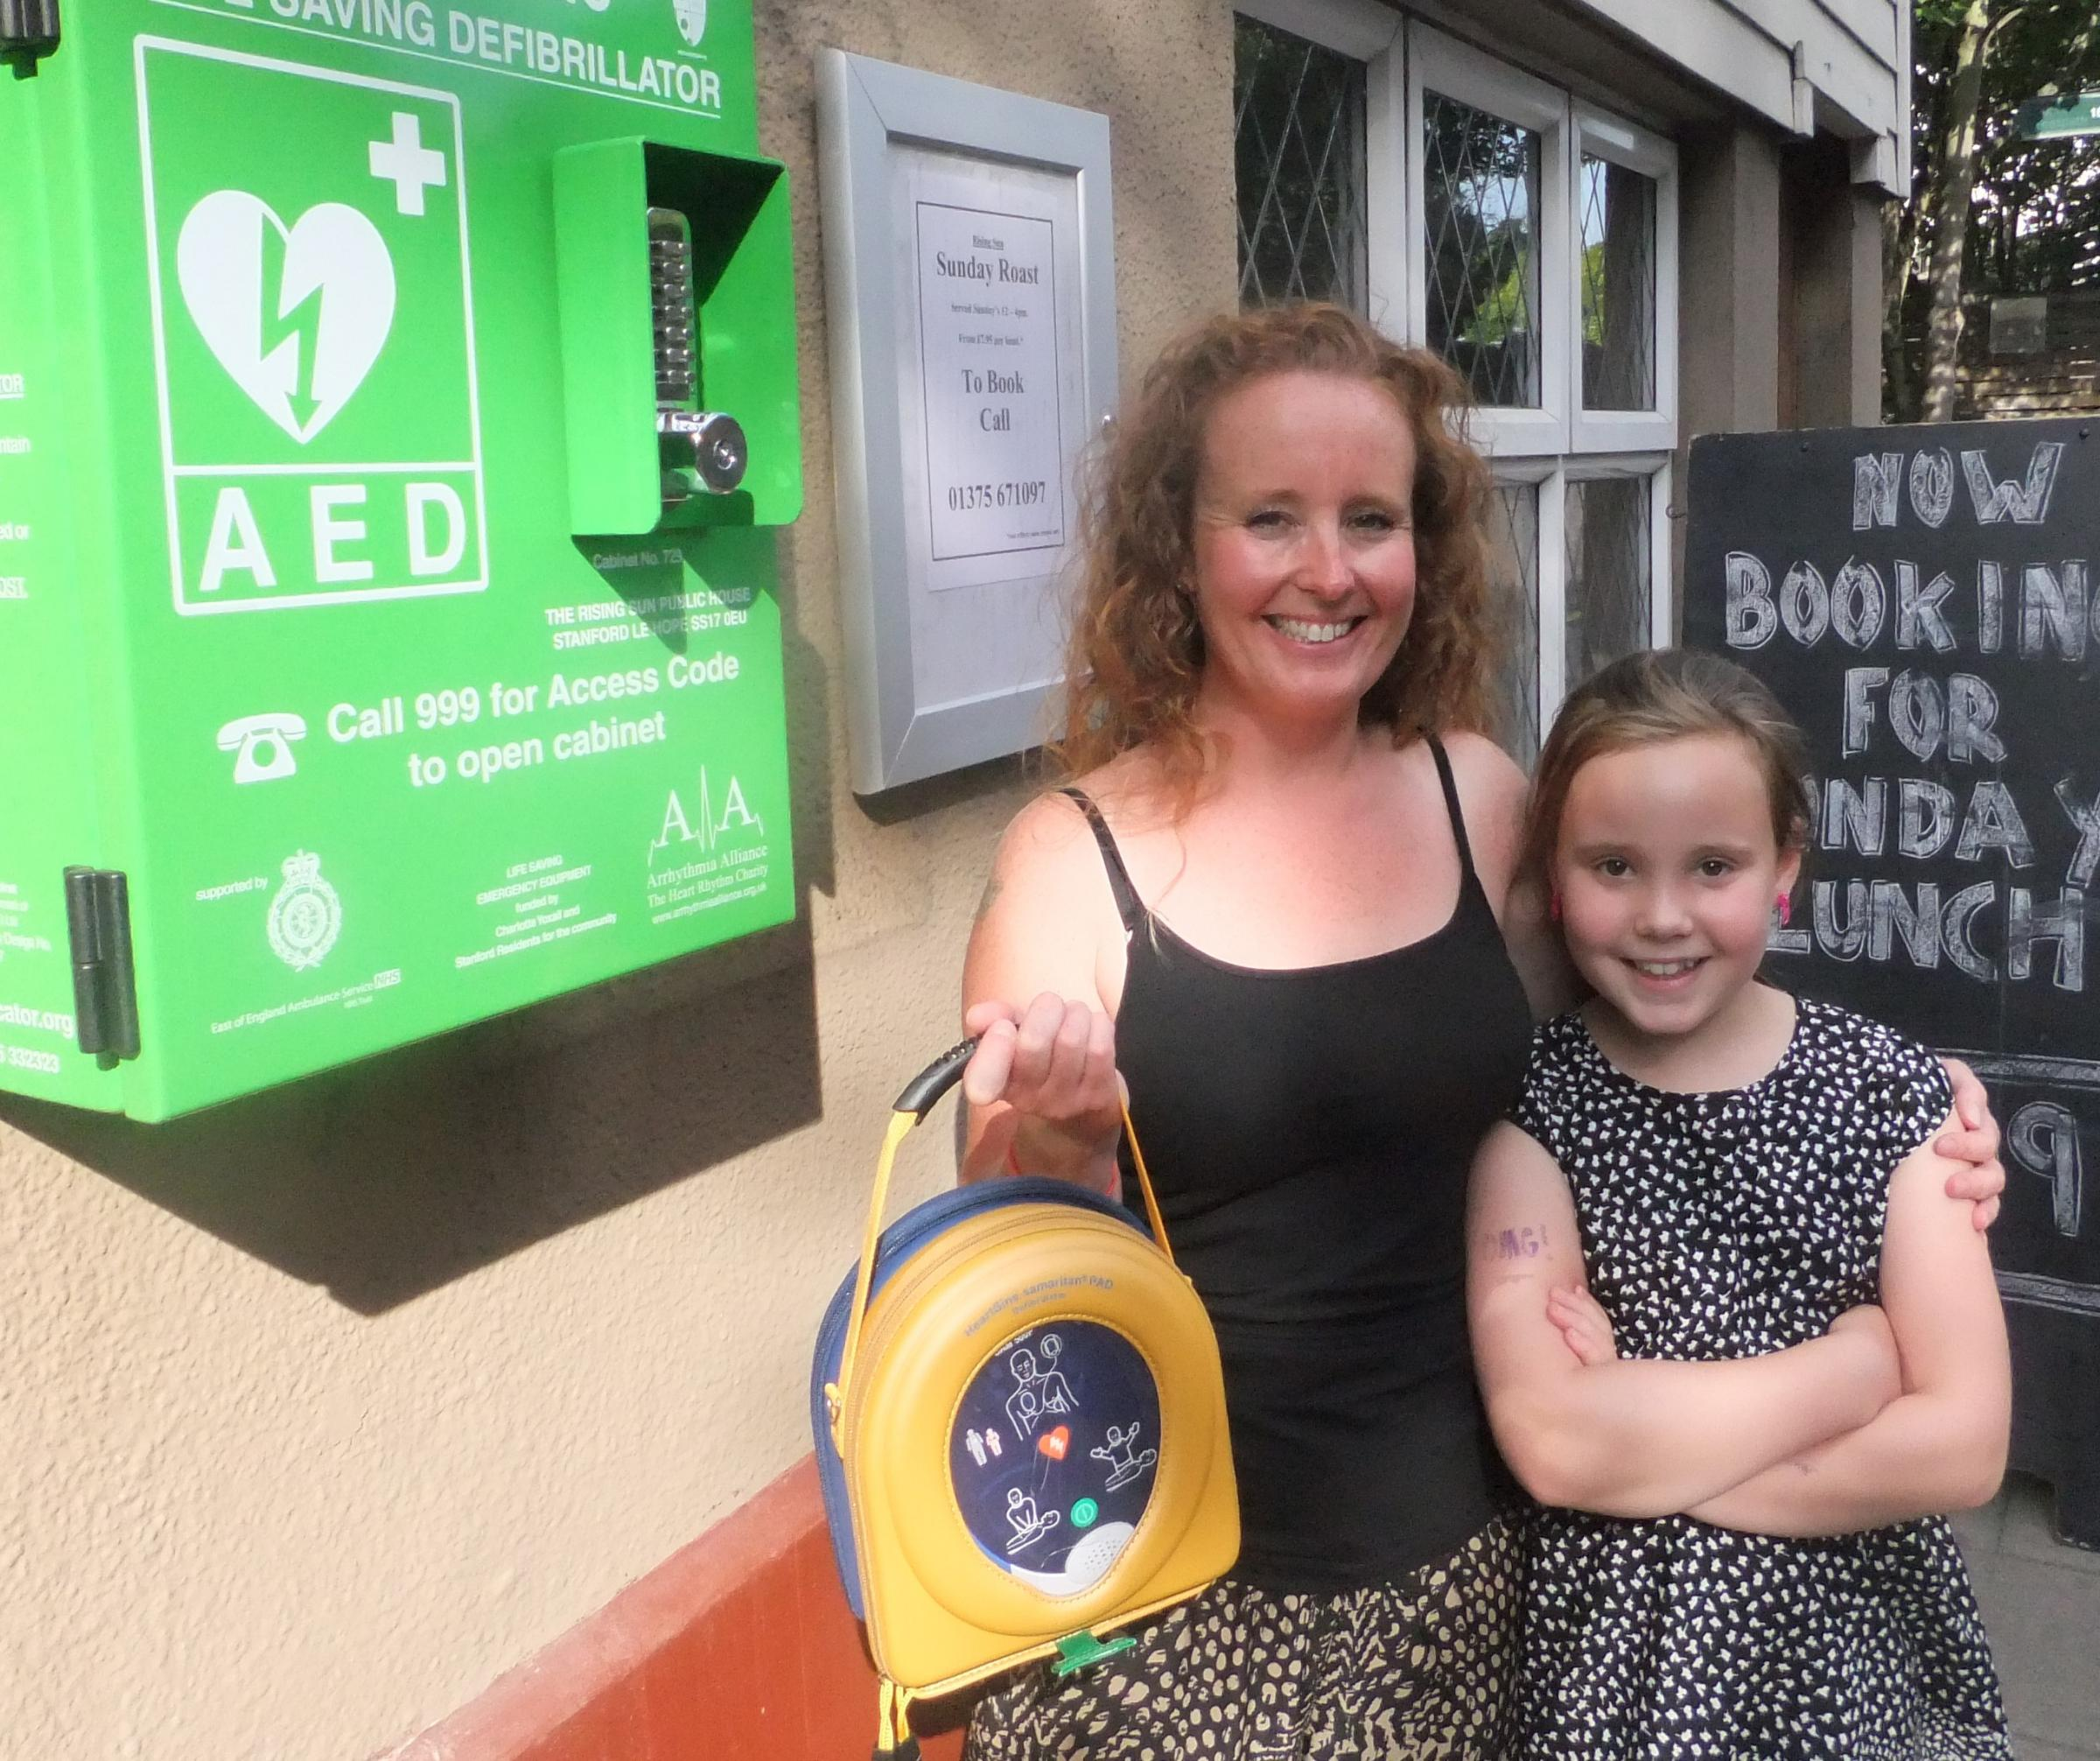 A similar defibrillator was put up at the Rising Sun pub in Stanford-le-Ho